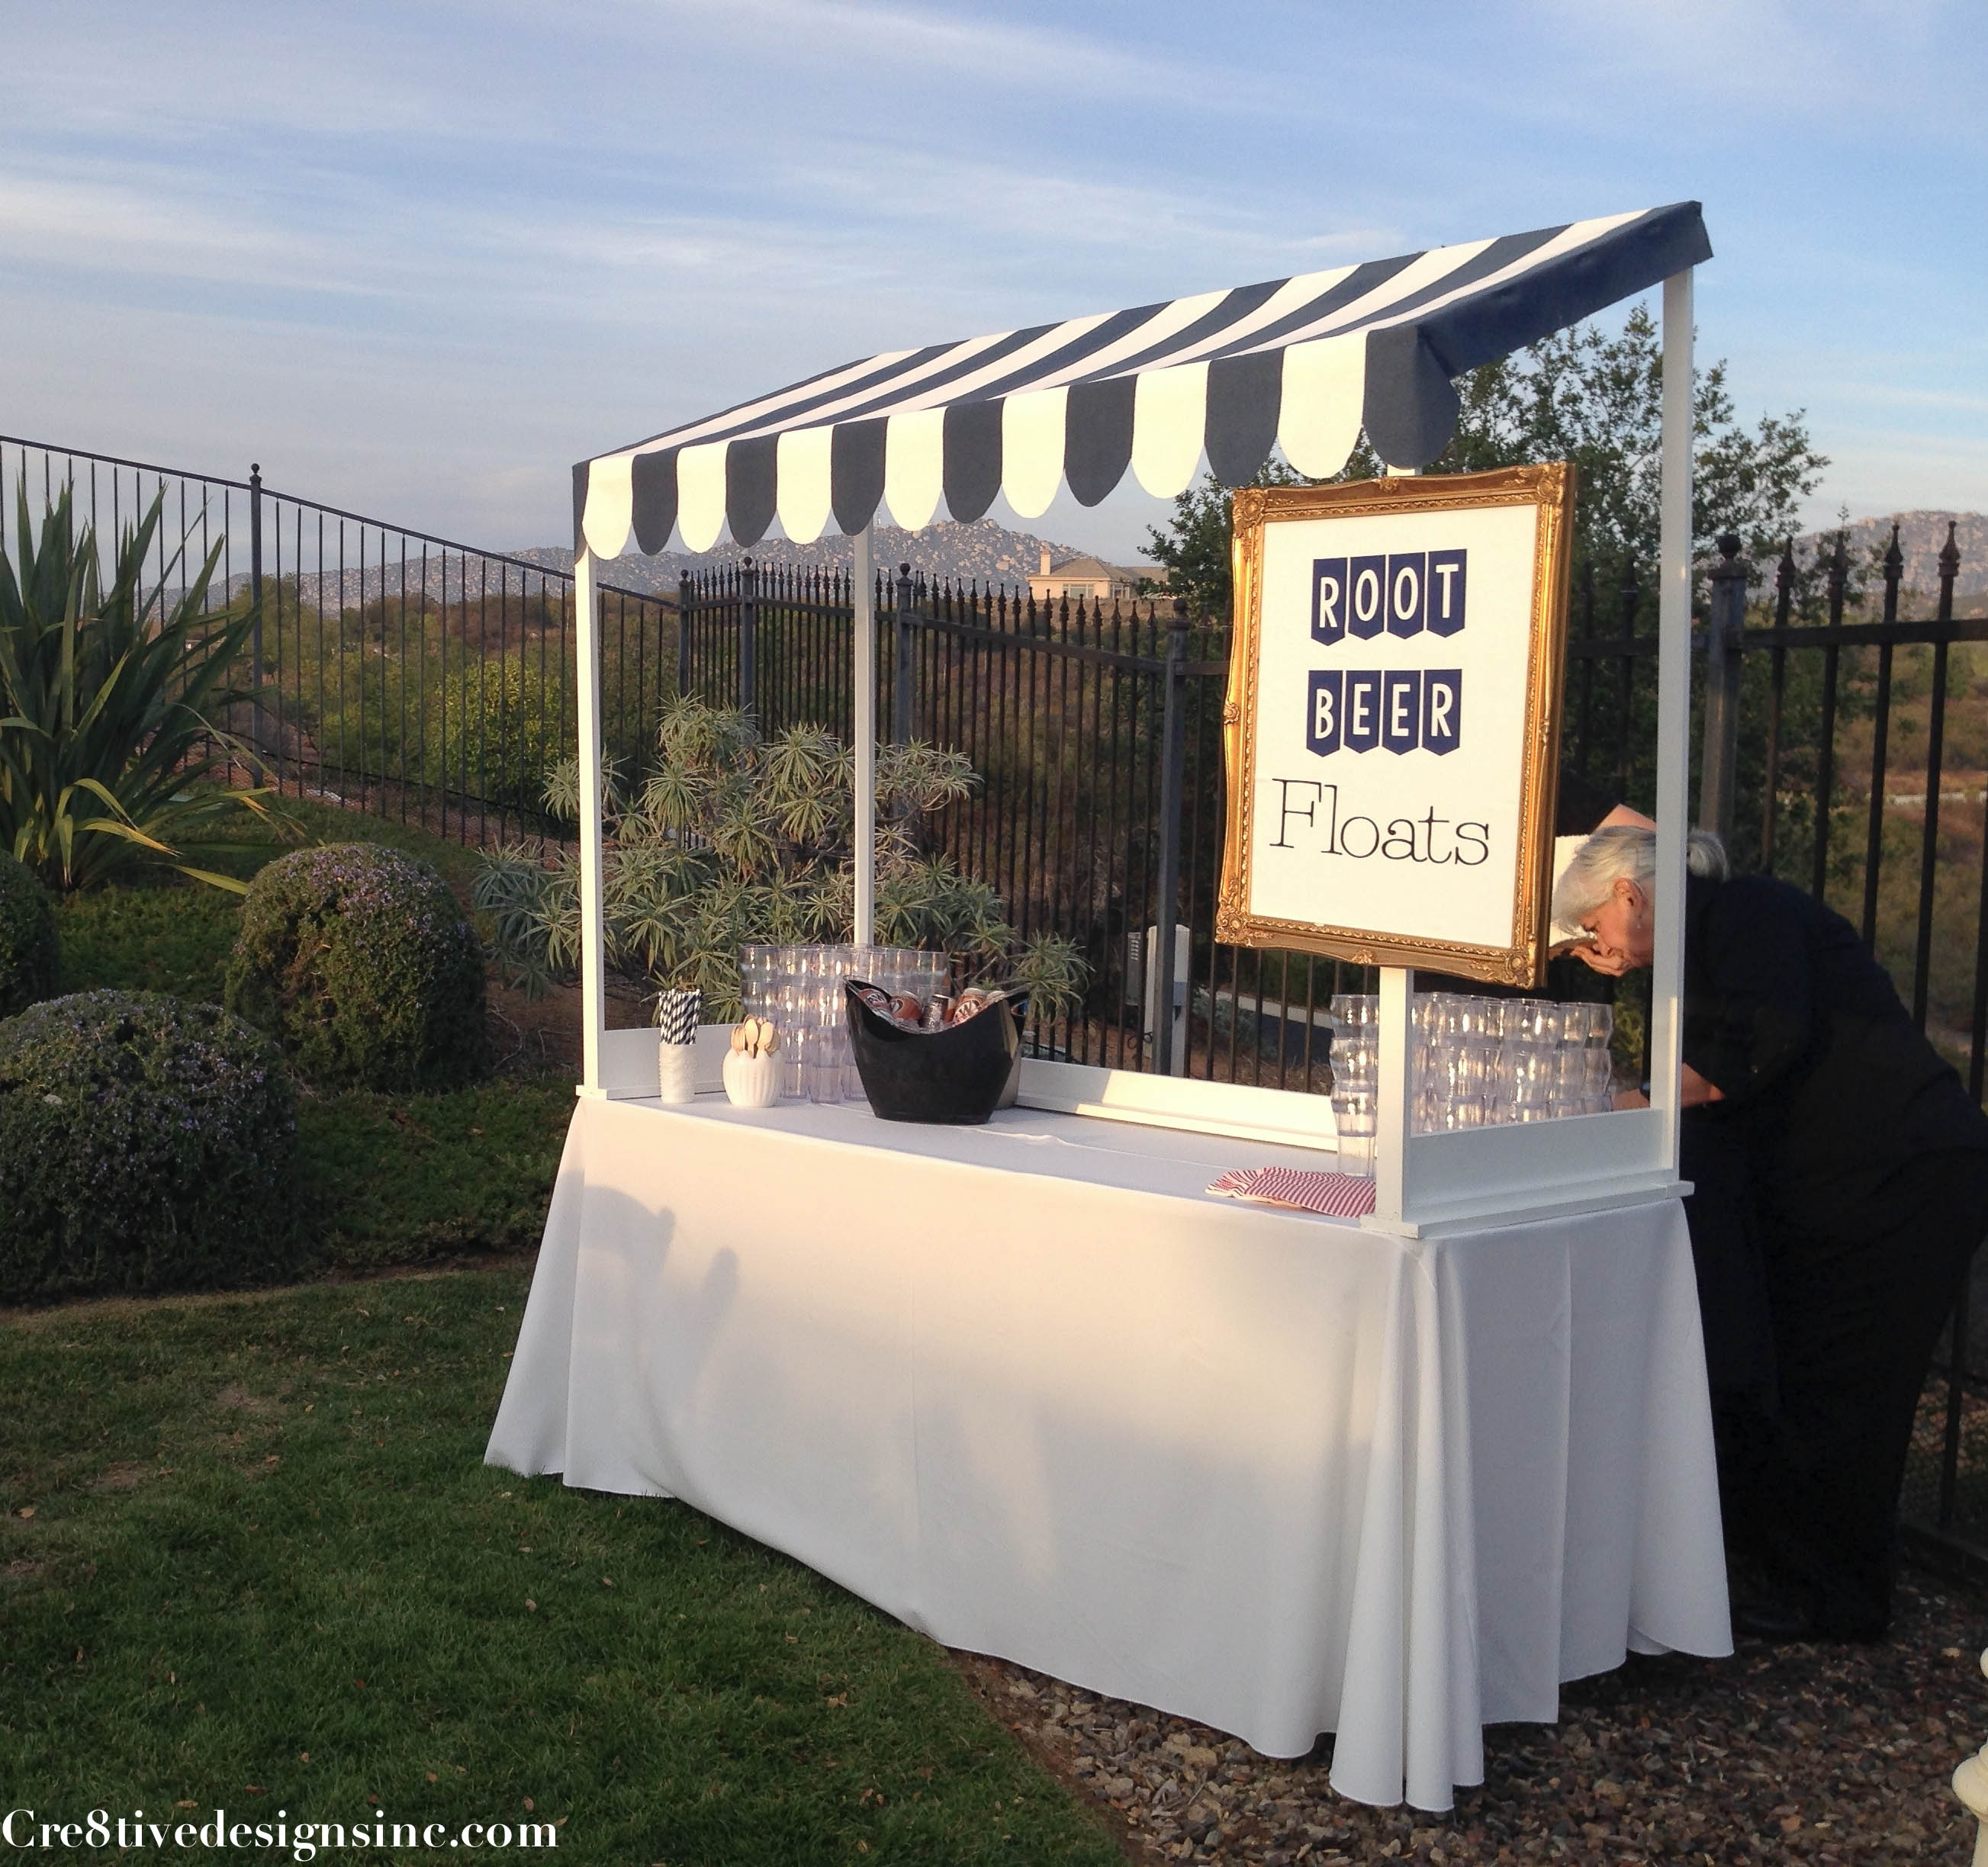 Root beer float station & How to build a table top canopy - Cre8tive Designs Inc.